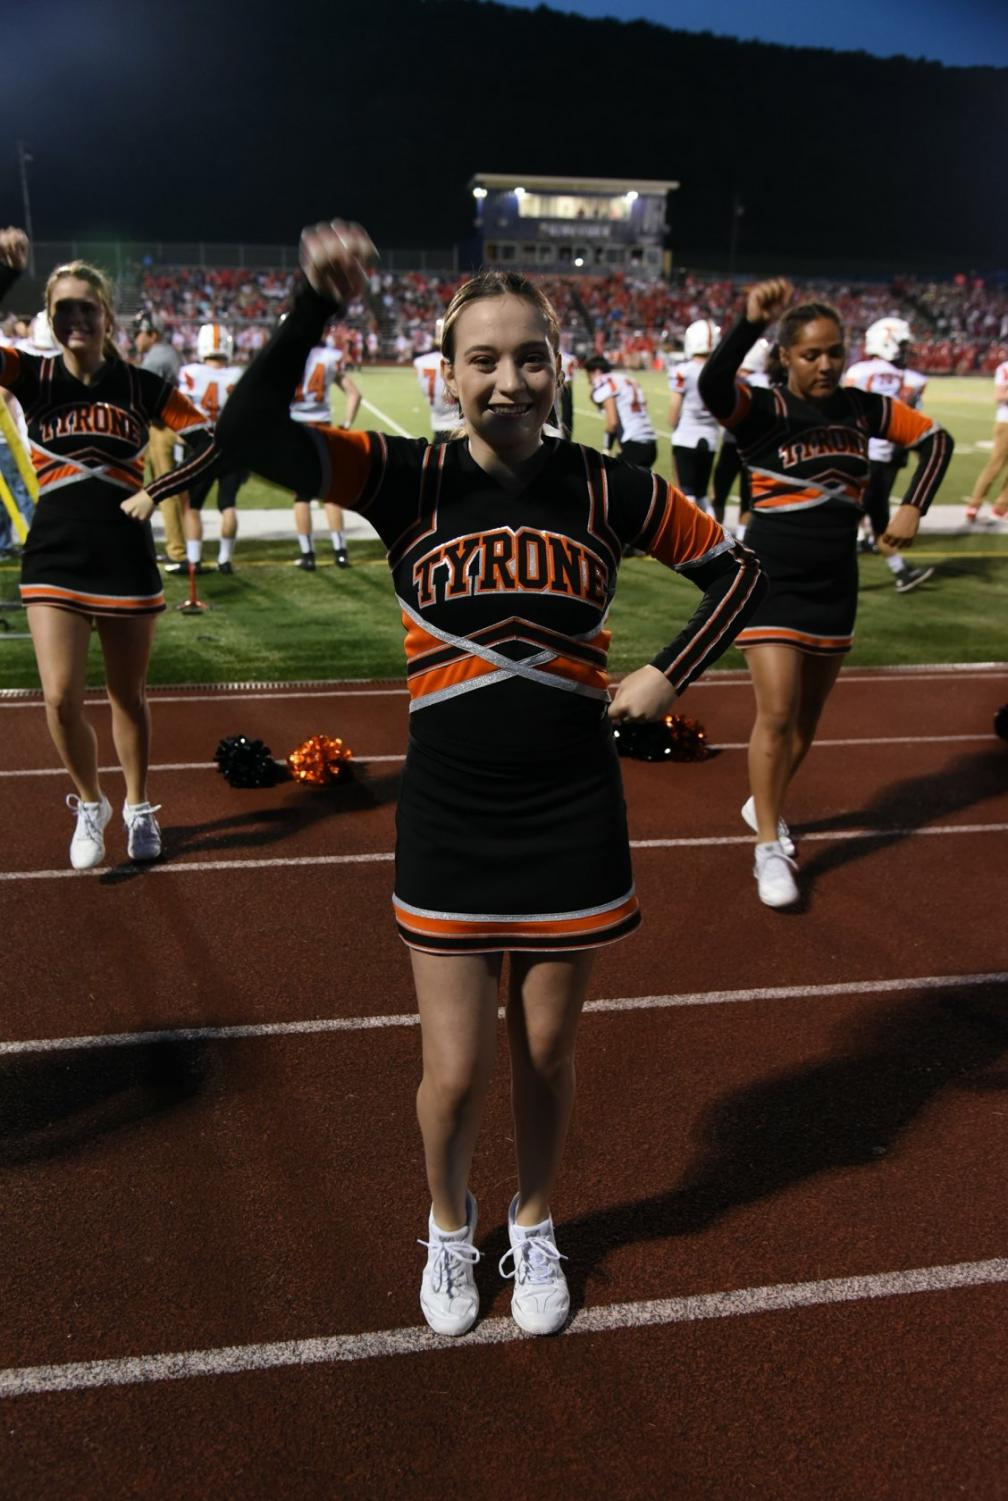 Olivia Watson has been cheering since she was in 7th grade.